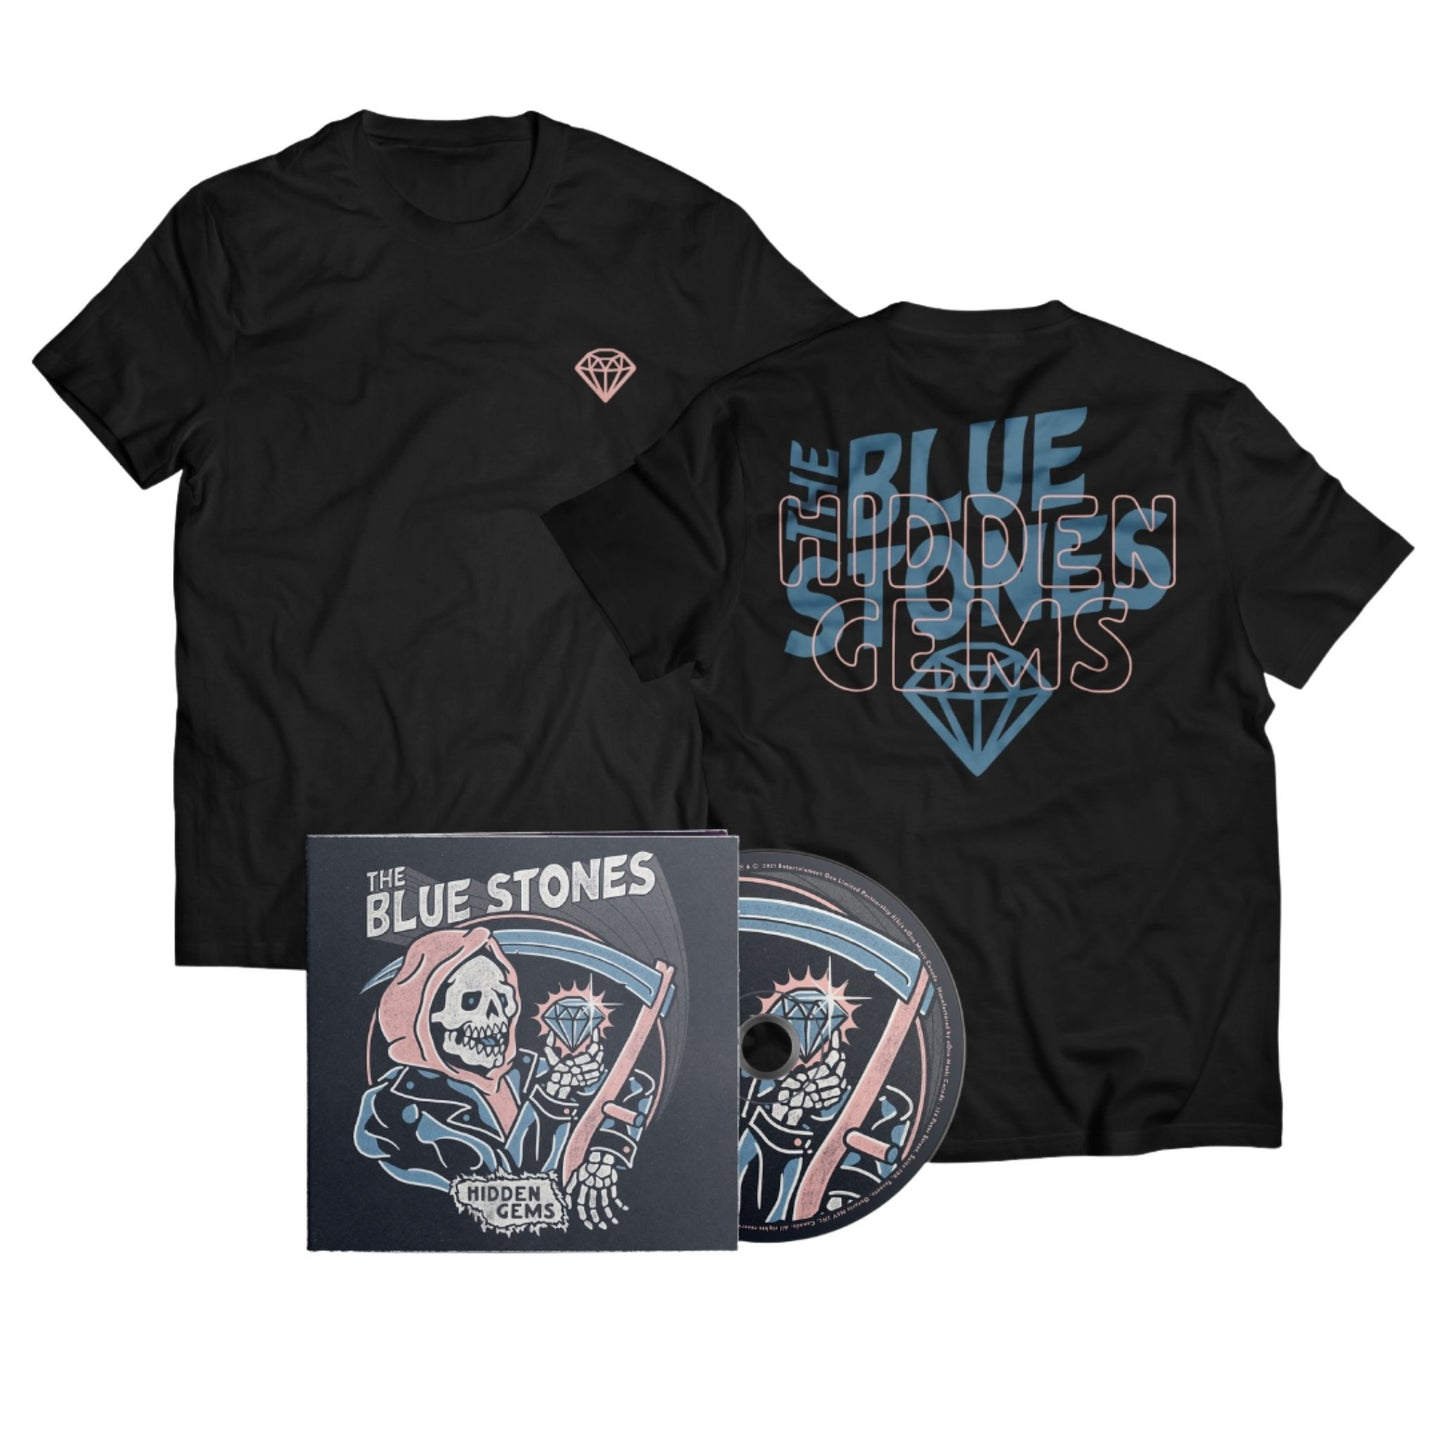 The Blue Stones - Hidden Gems Shirt + CD Bundle